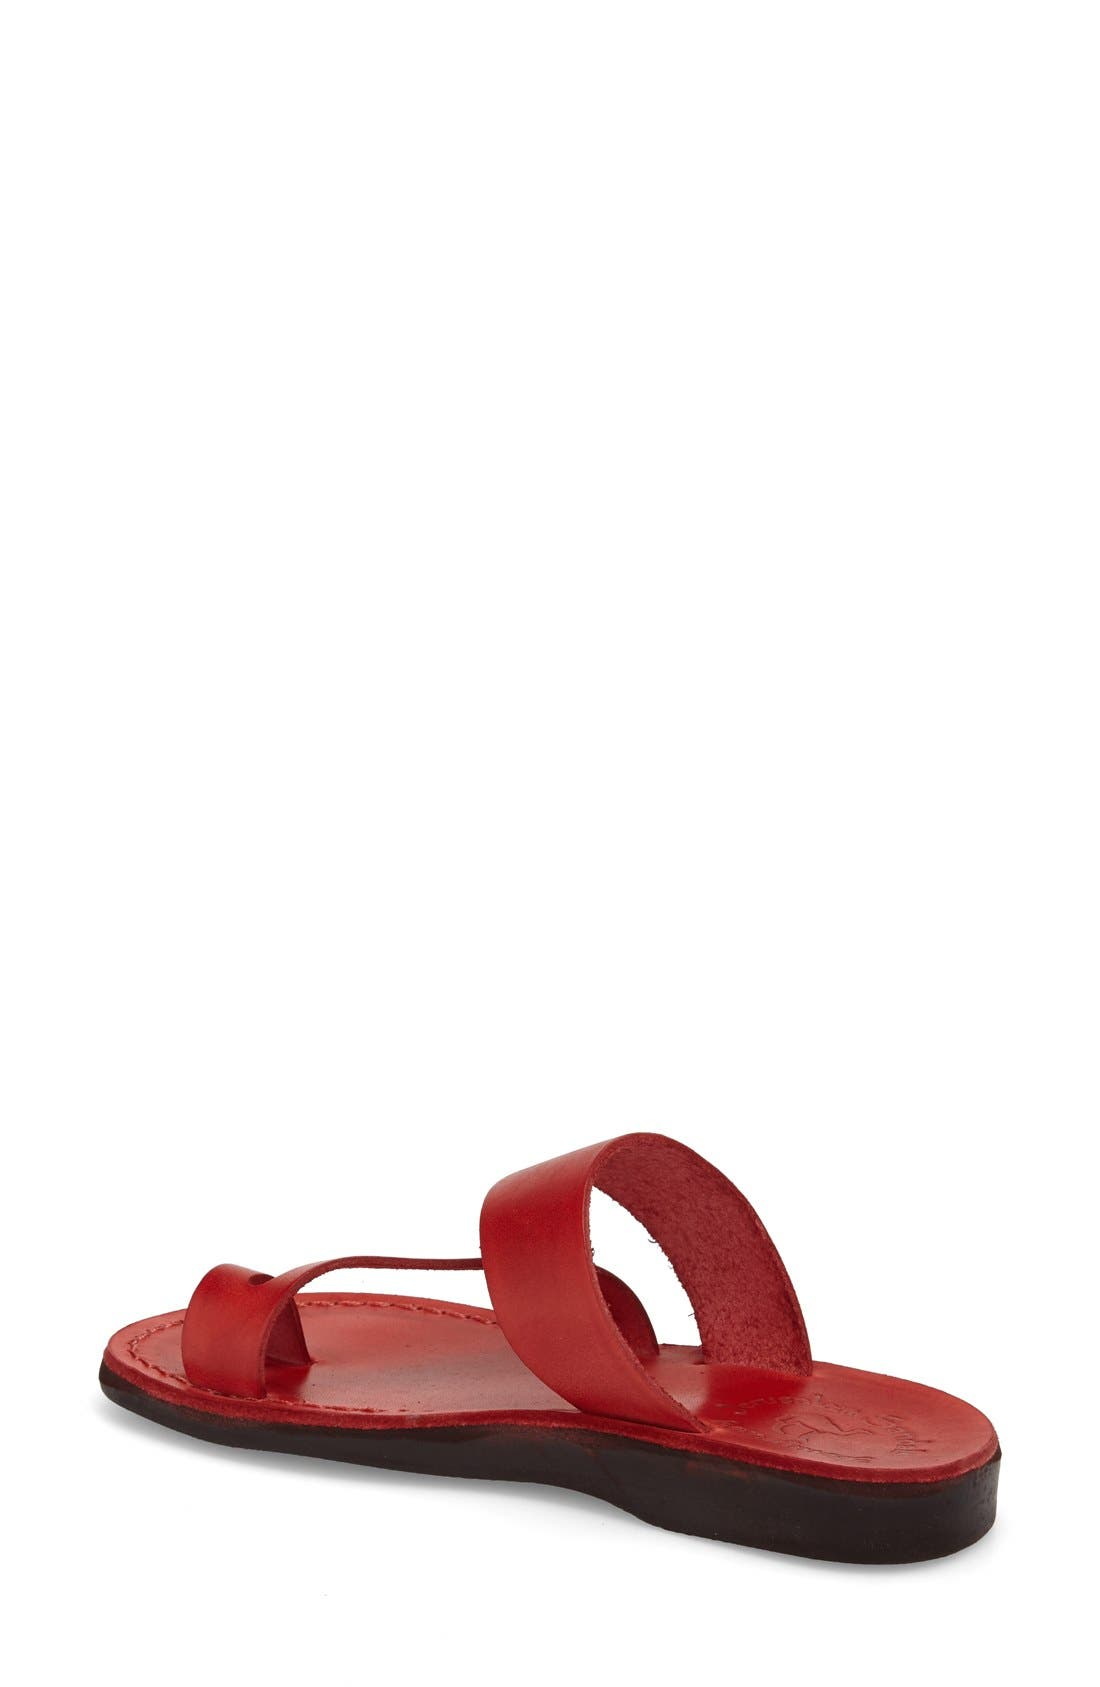 'Zohar' Leather Sandal,                             Alternate thumbnail 12, color,